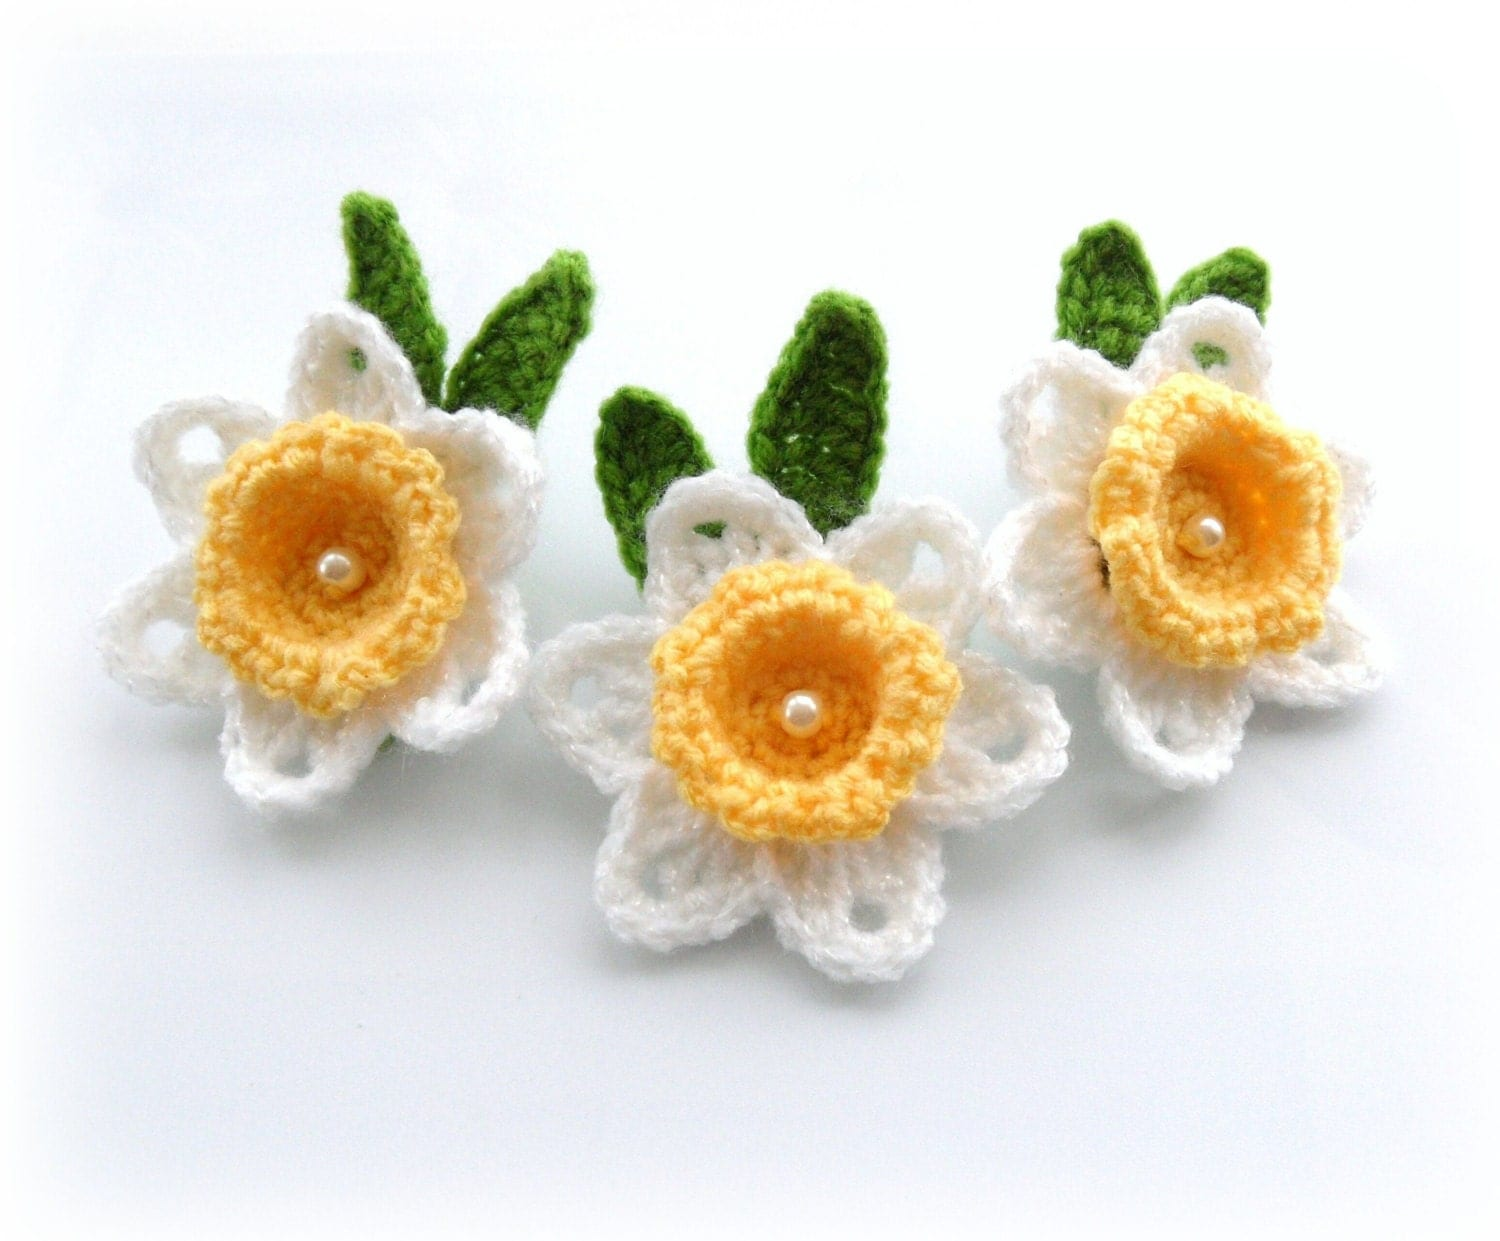 Knitted Daffodil Brooch Pattern : Crochet Applique Daffodil Flowers Crochet Daffodil Brooches